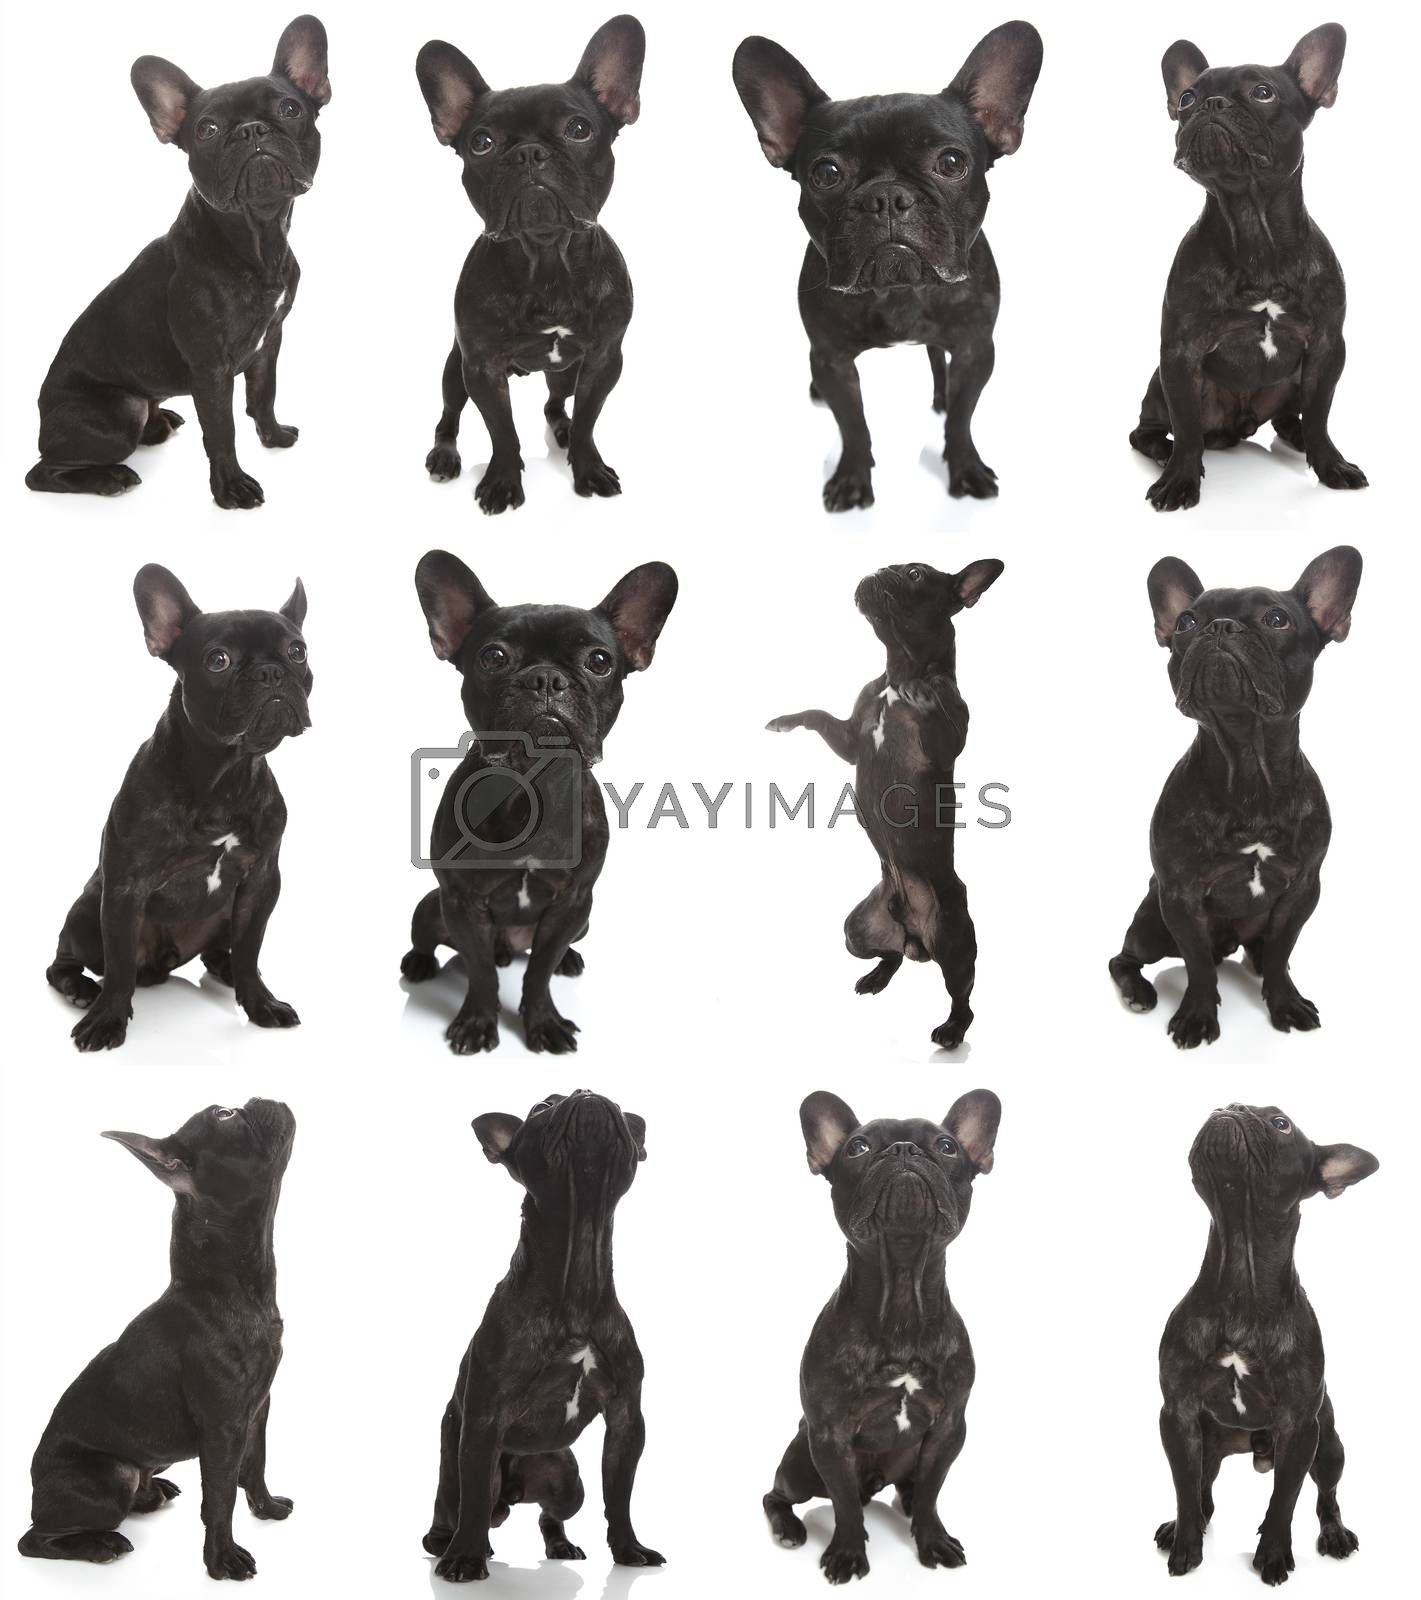 A little black french bulldog, compilation of different poses on white.